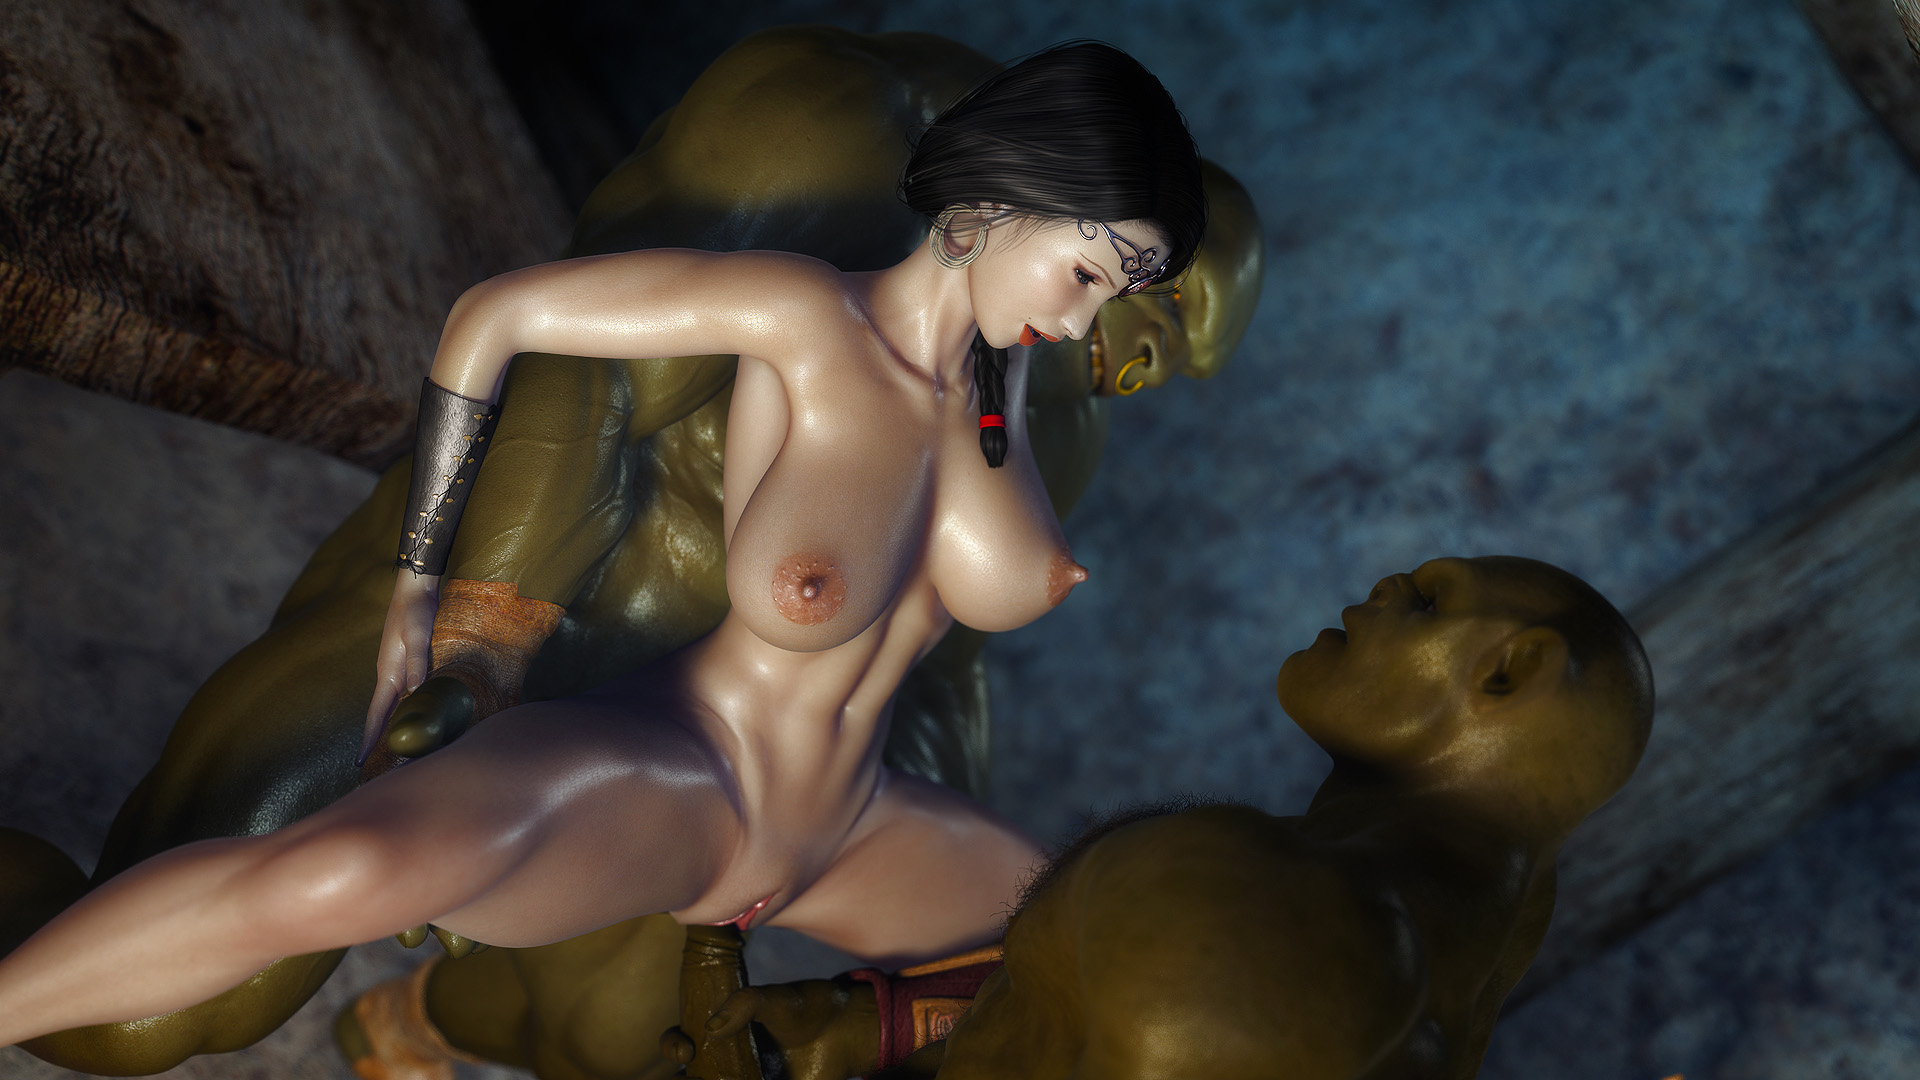 Fairy fucked by ogre hentia gallery